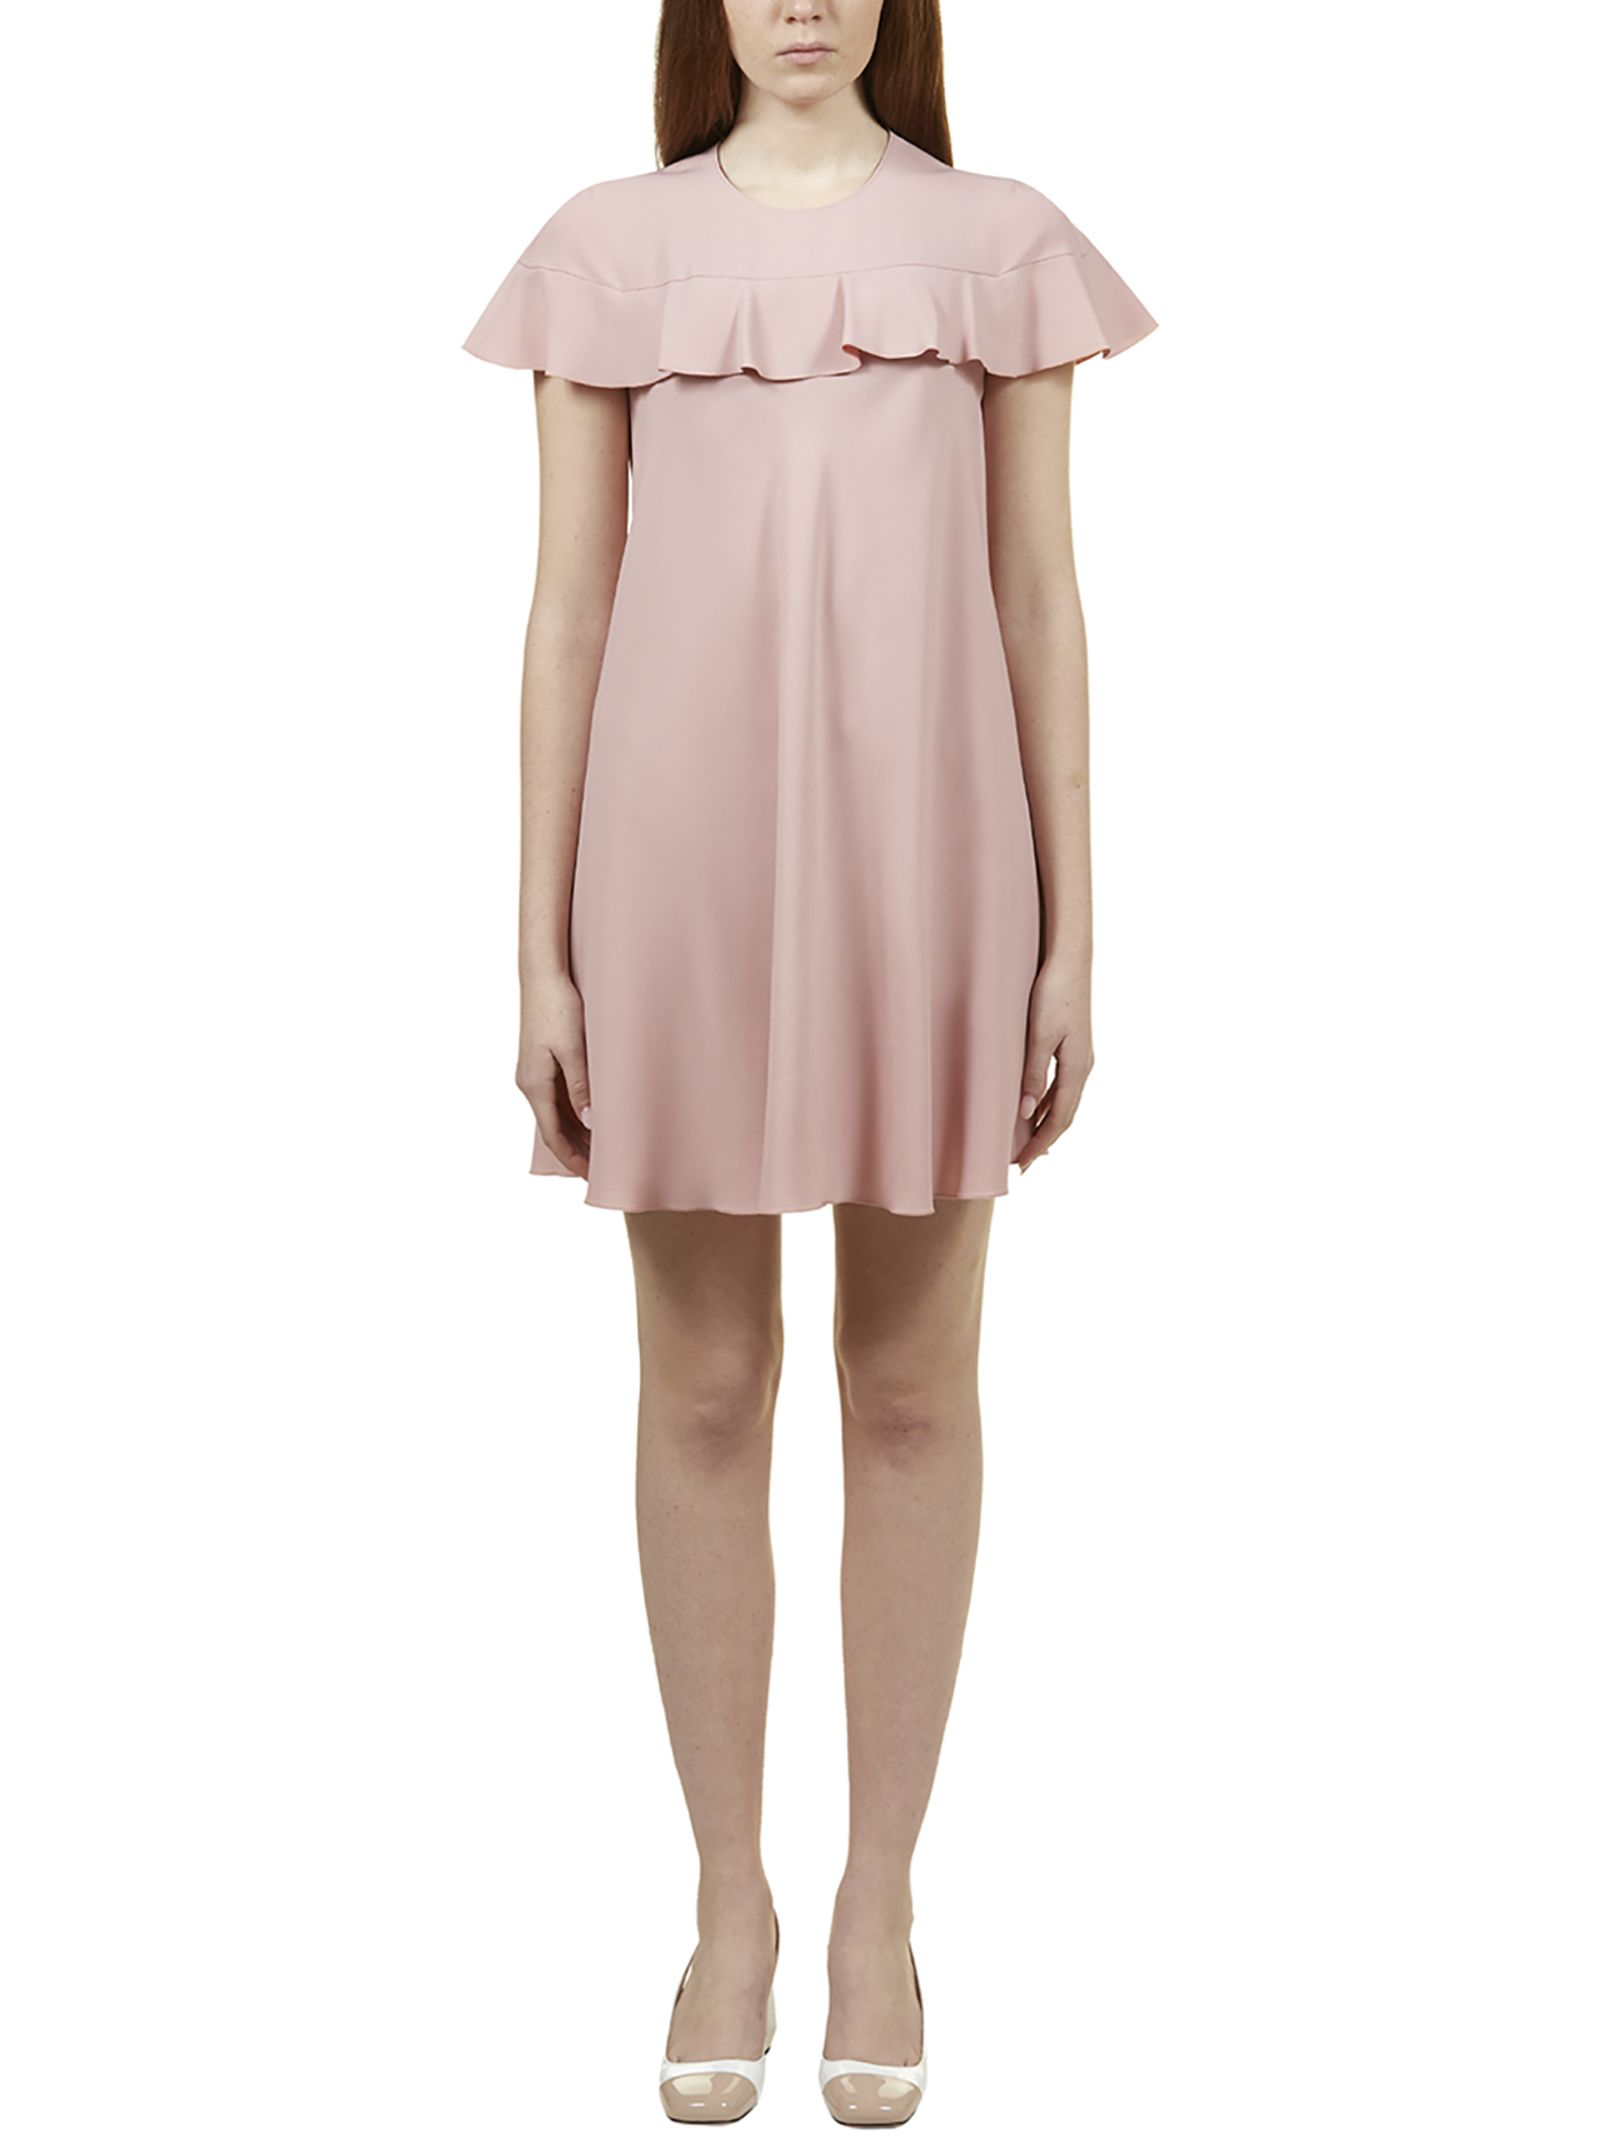 eaa425b1229 RED Valentino Red Valentino Ruffle Detail Mini Dress - Light rose ...